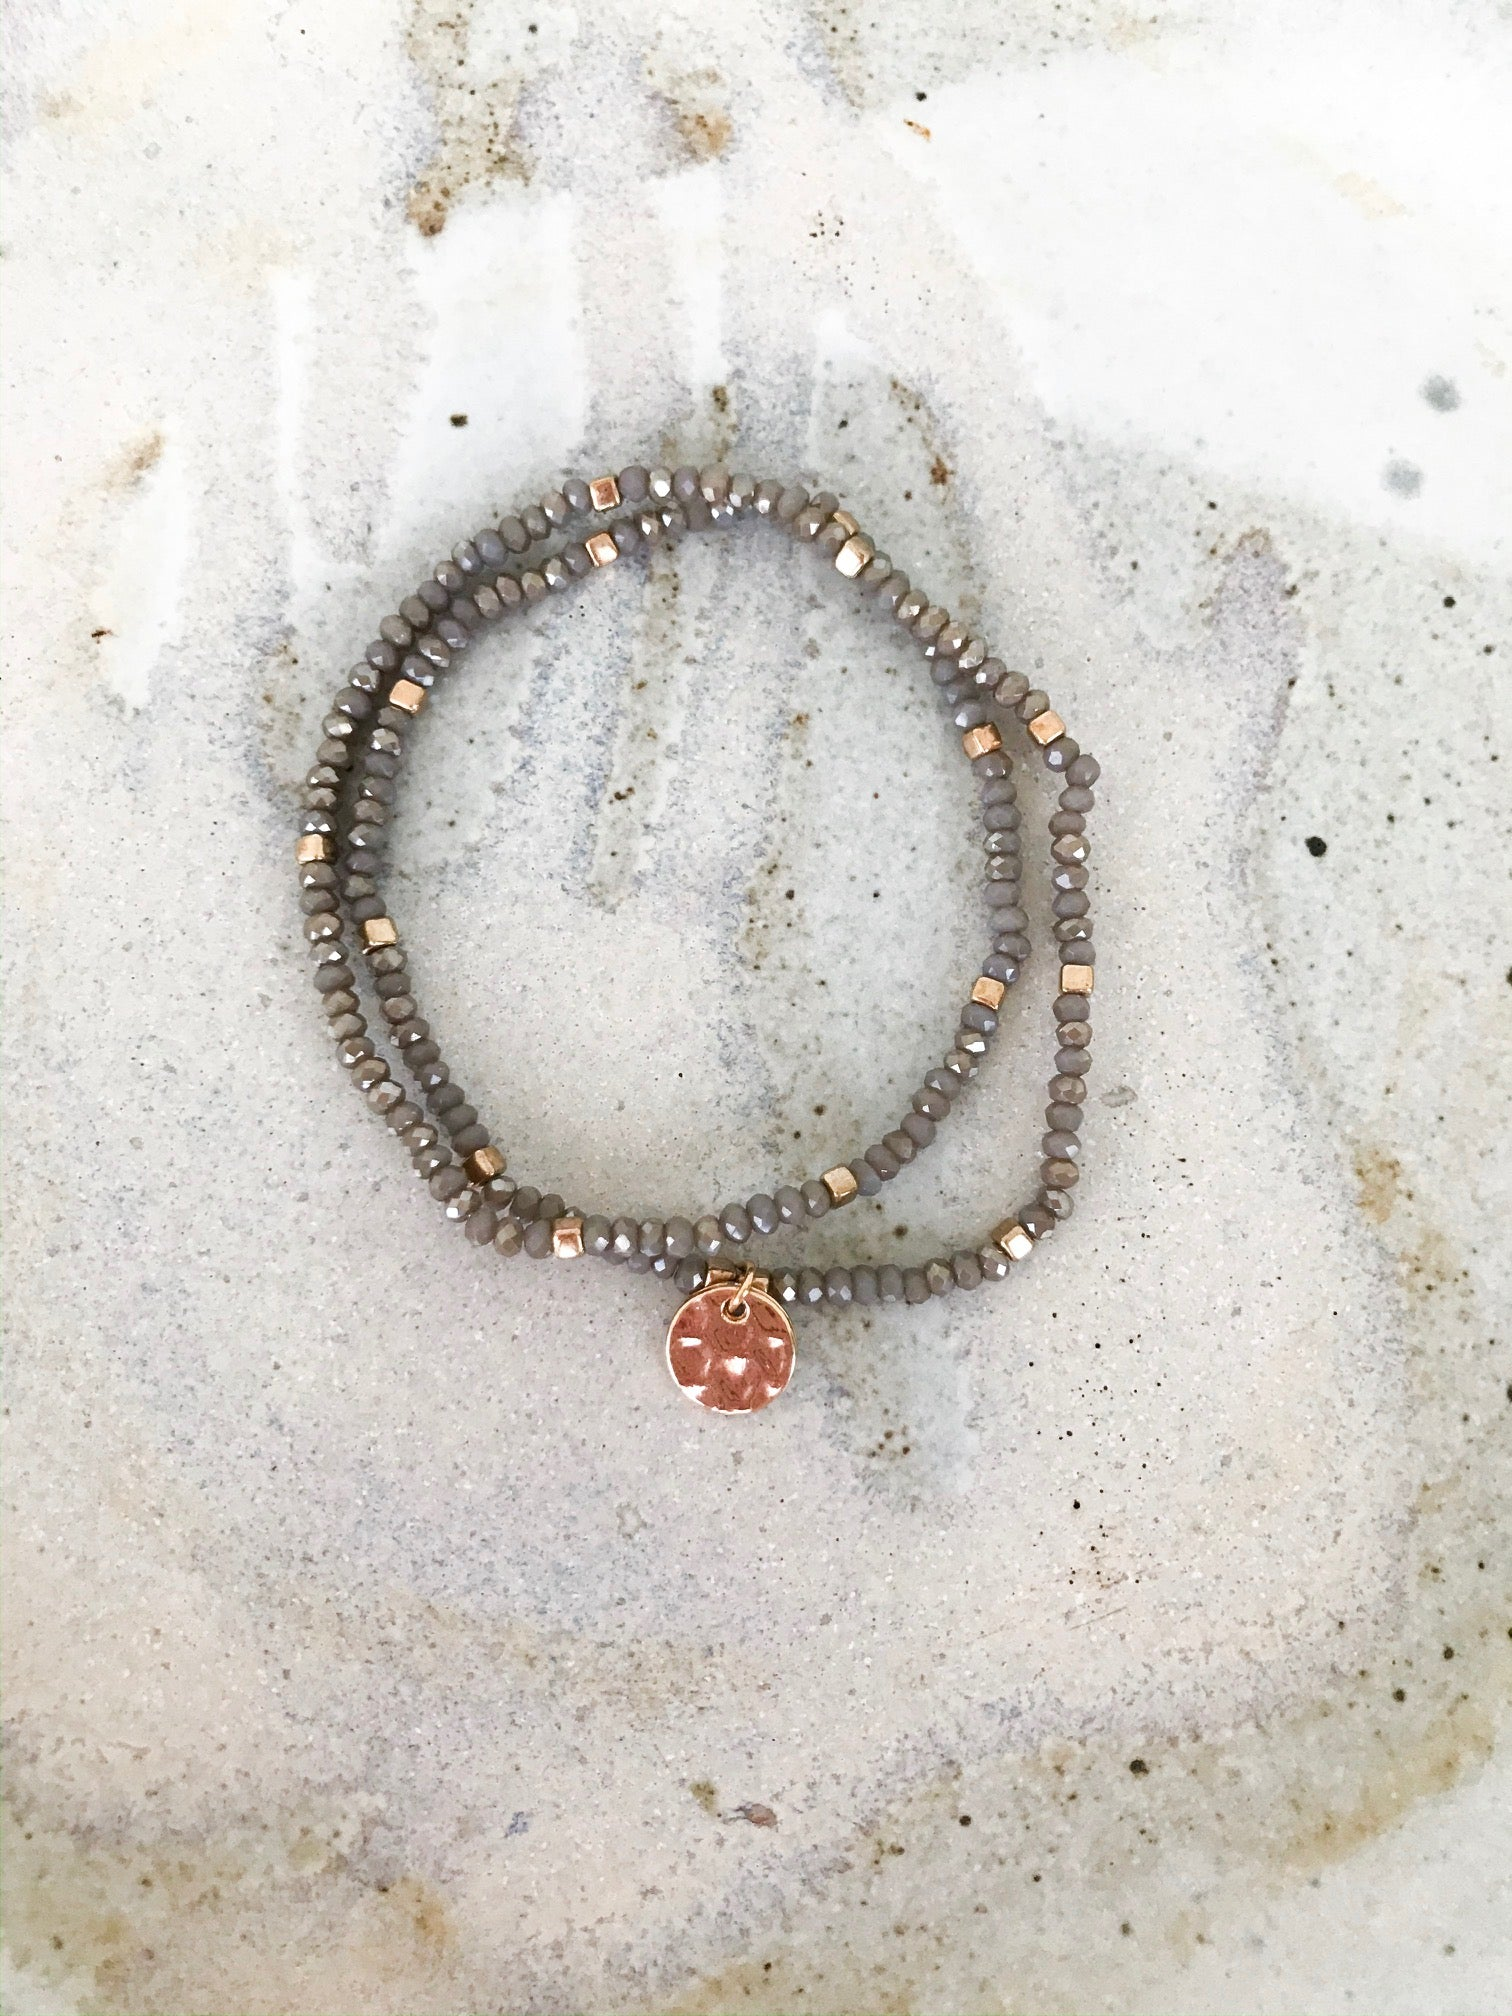 Grey Beaded Wrap Bracelet or Necklace - NIKNIK'S BOUTIQUE